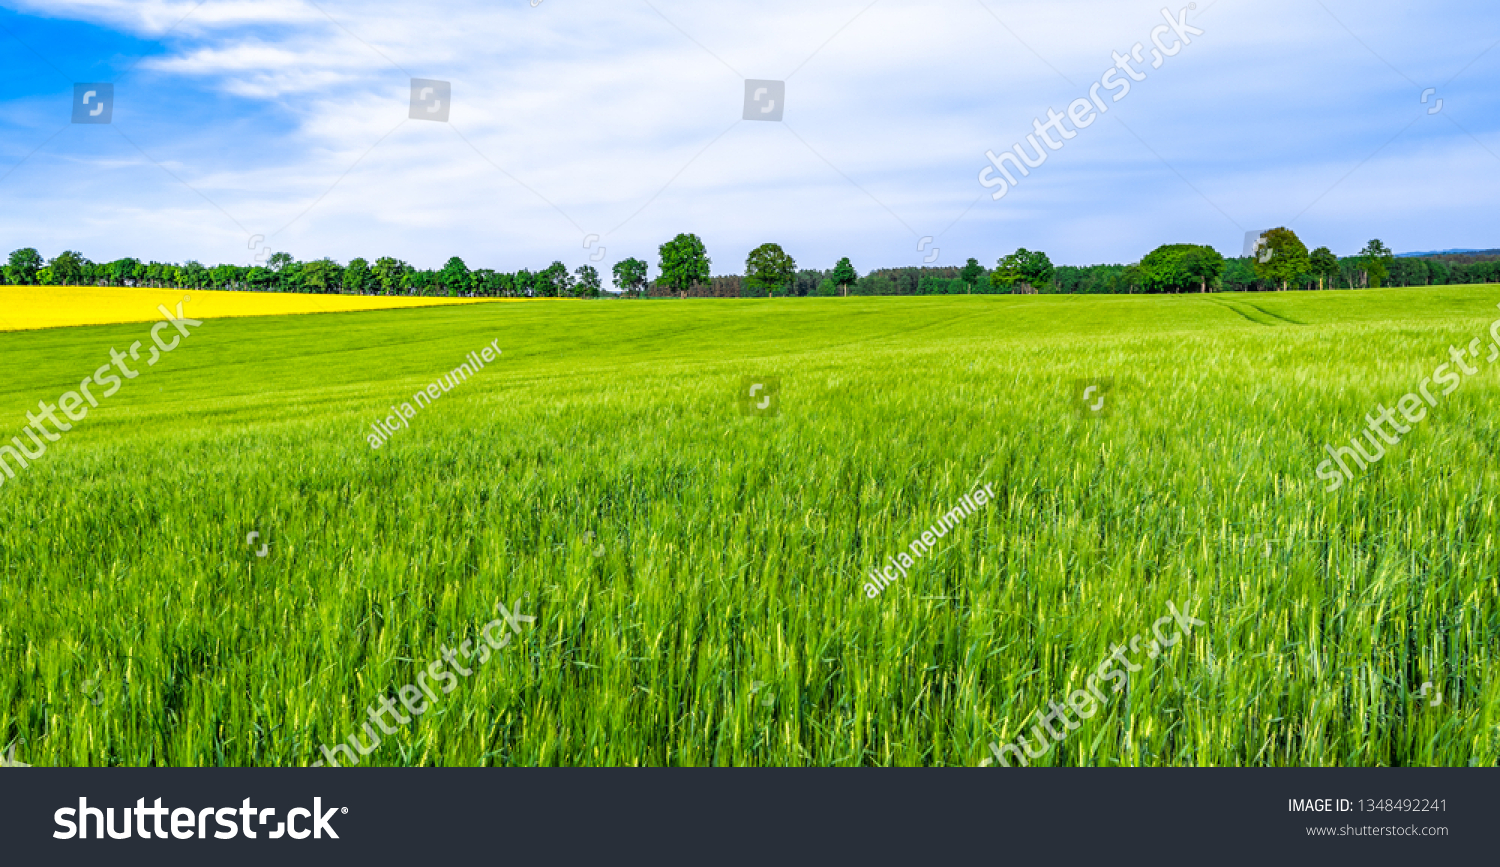 Green farm, panoramic view of farmland, crop of wheat on field, spring landscape